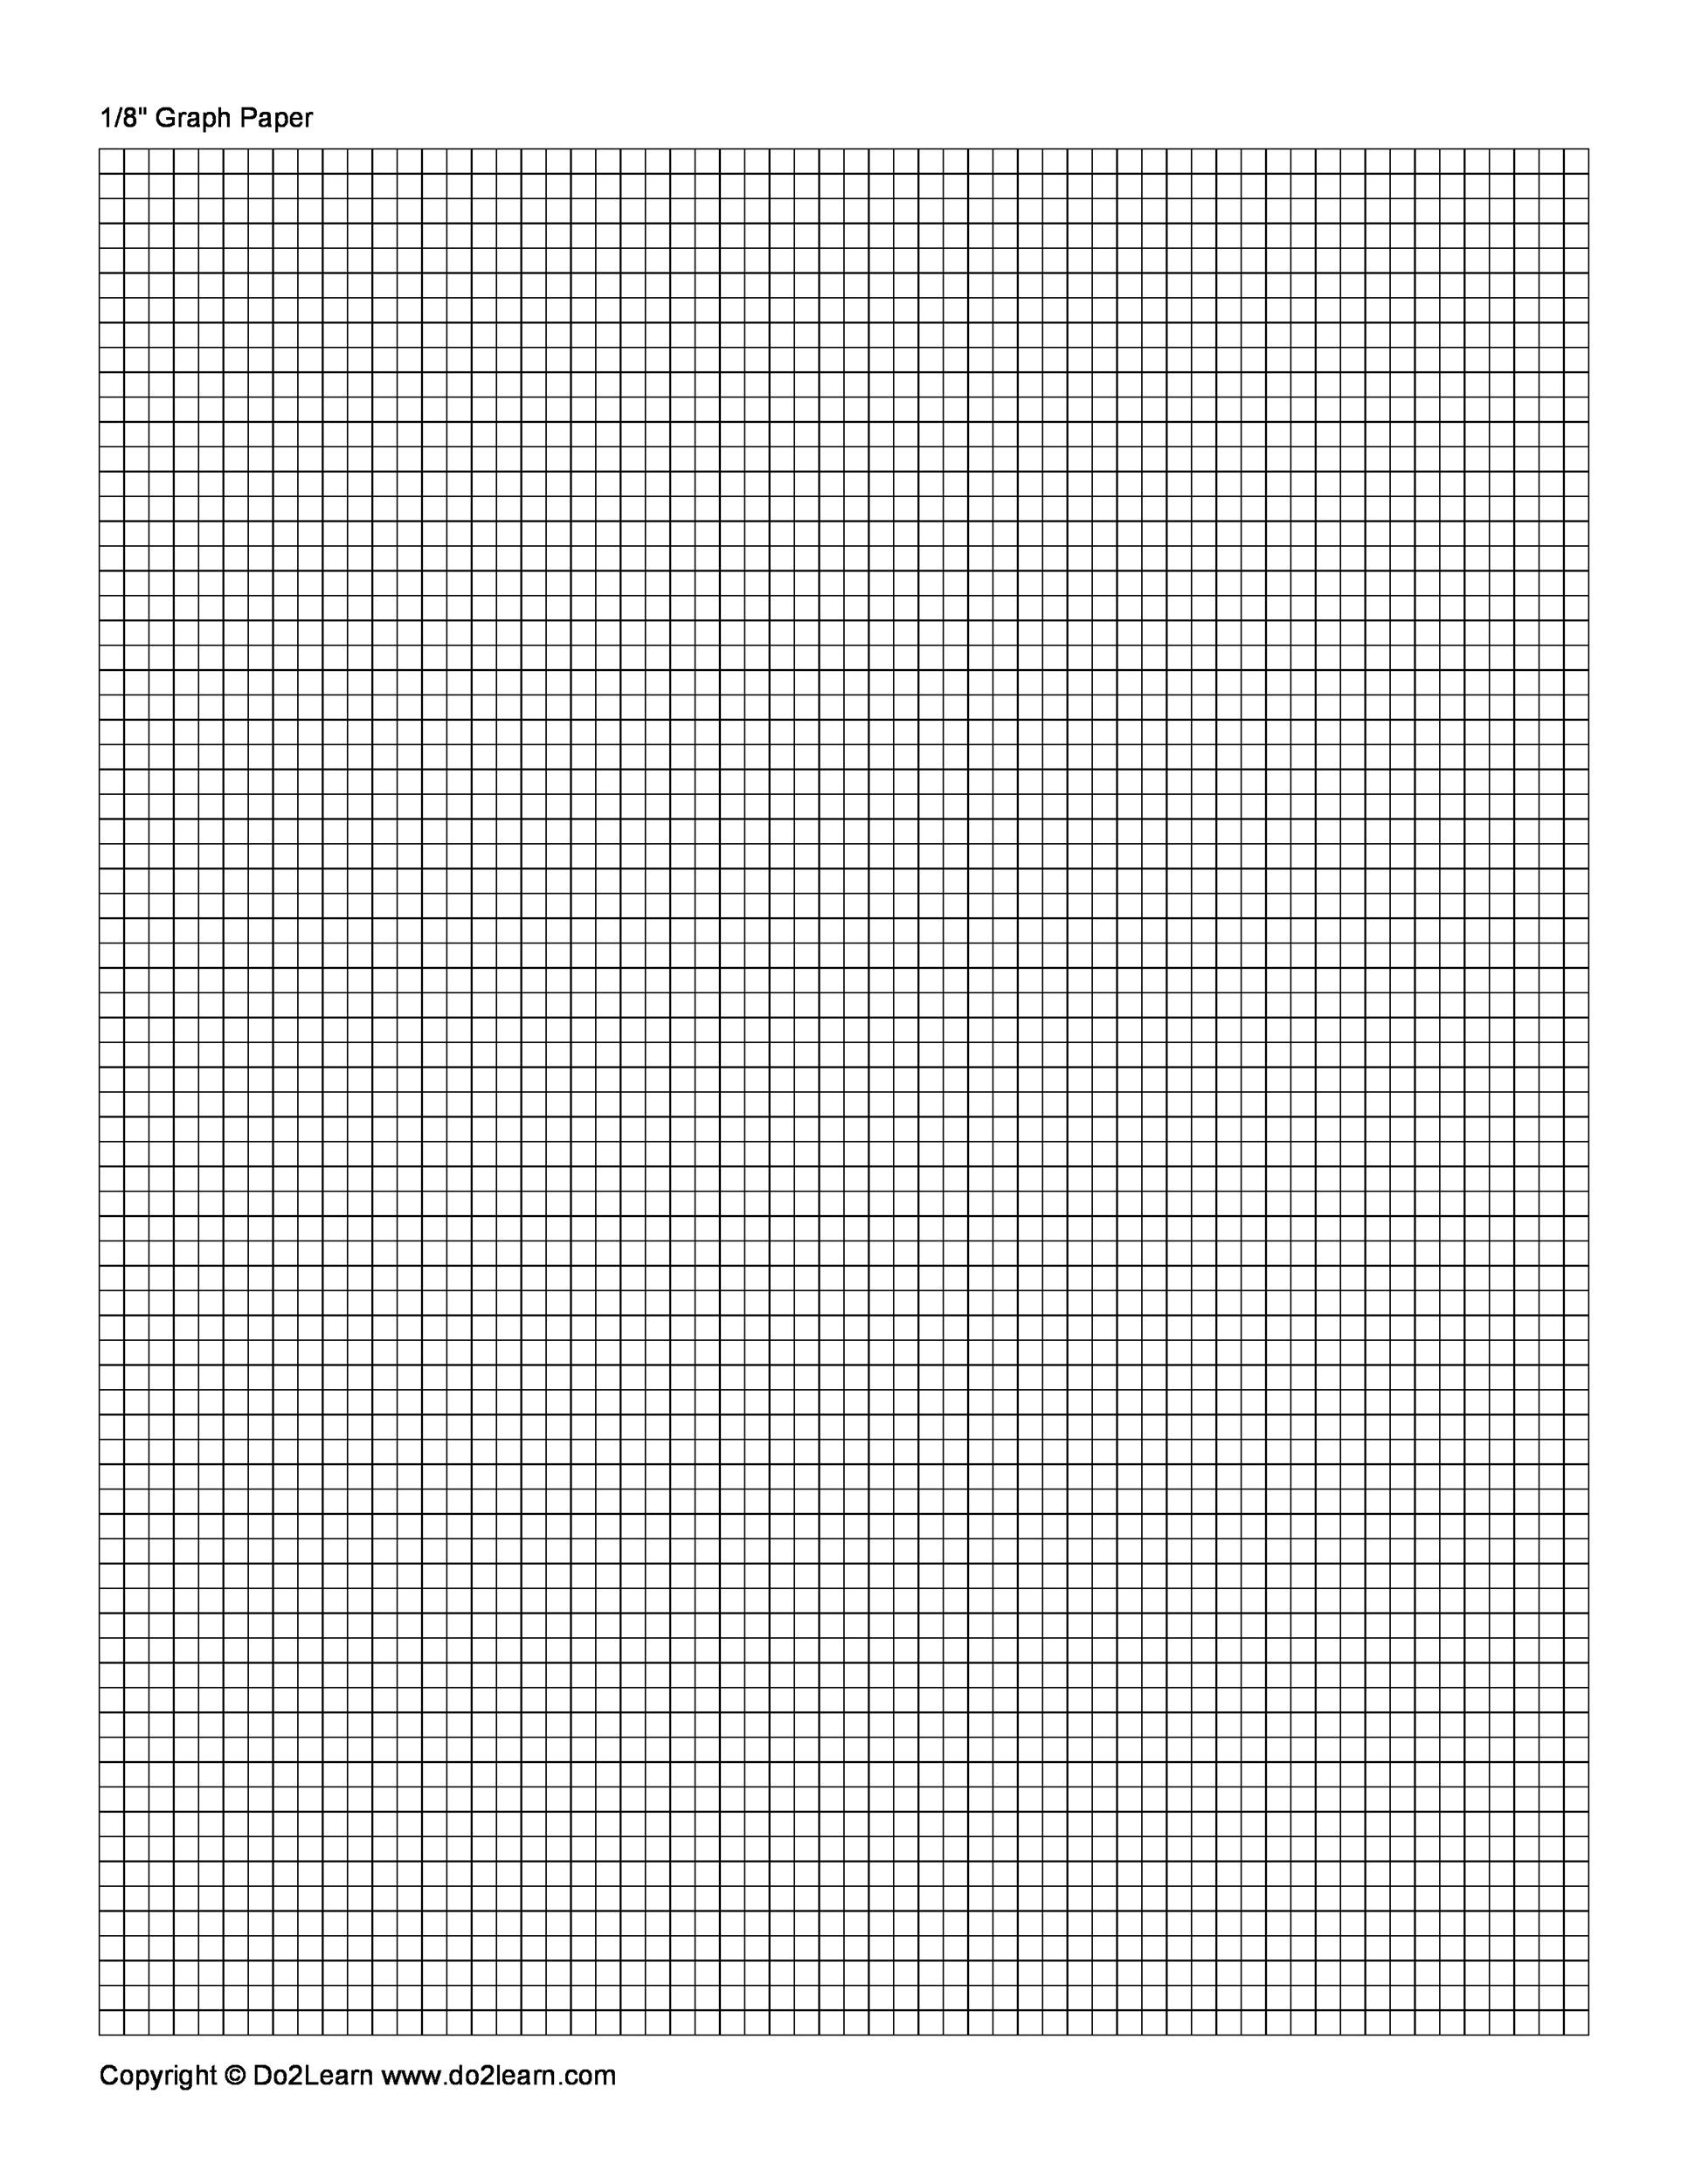 worksheet 4 Quadrant Graph Paper 30 free printable graph paper templates word pdf template lab 01